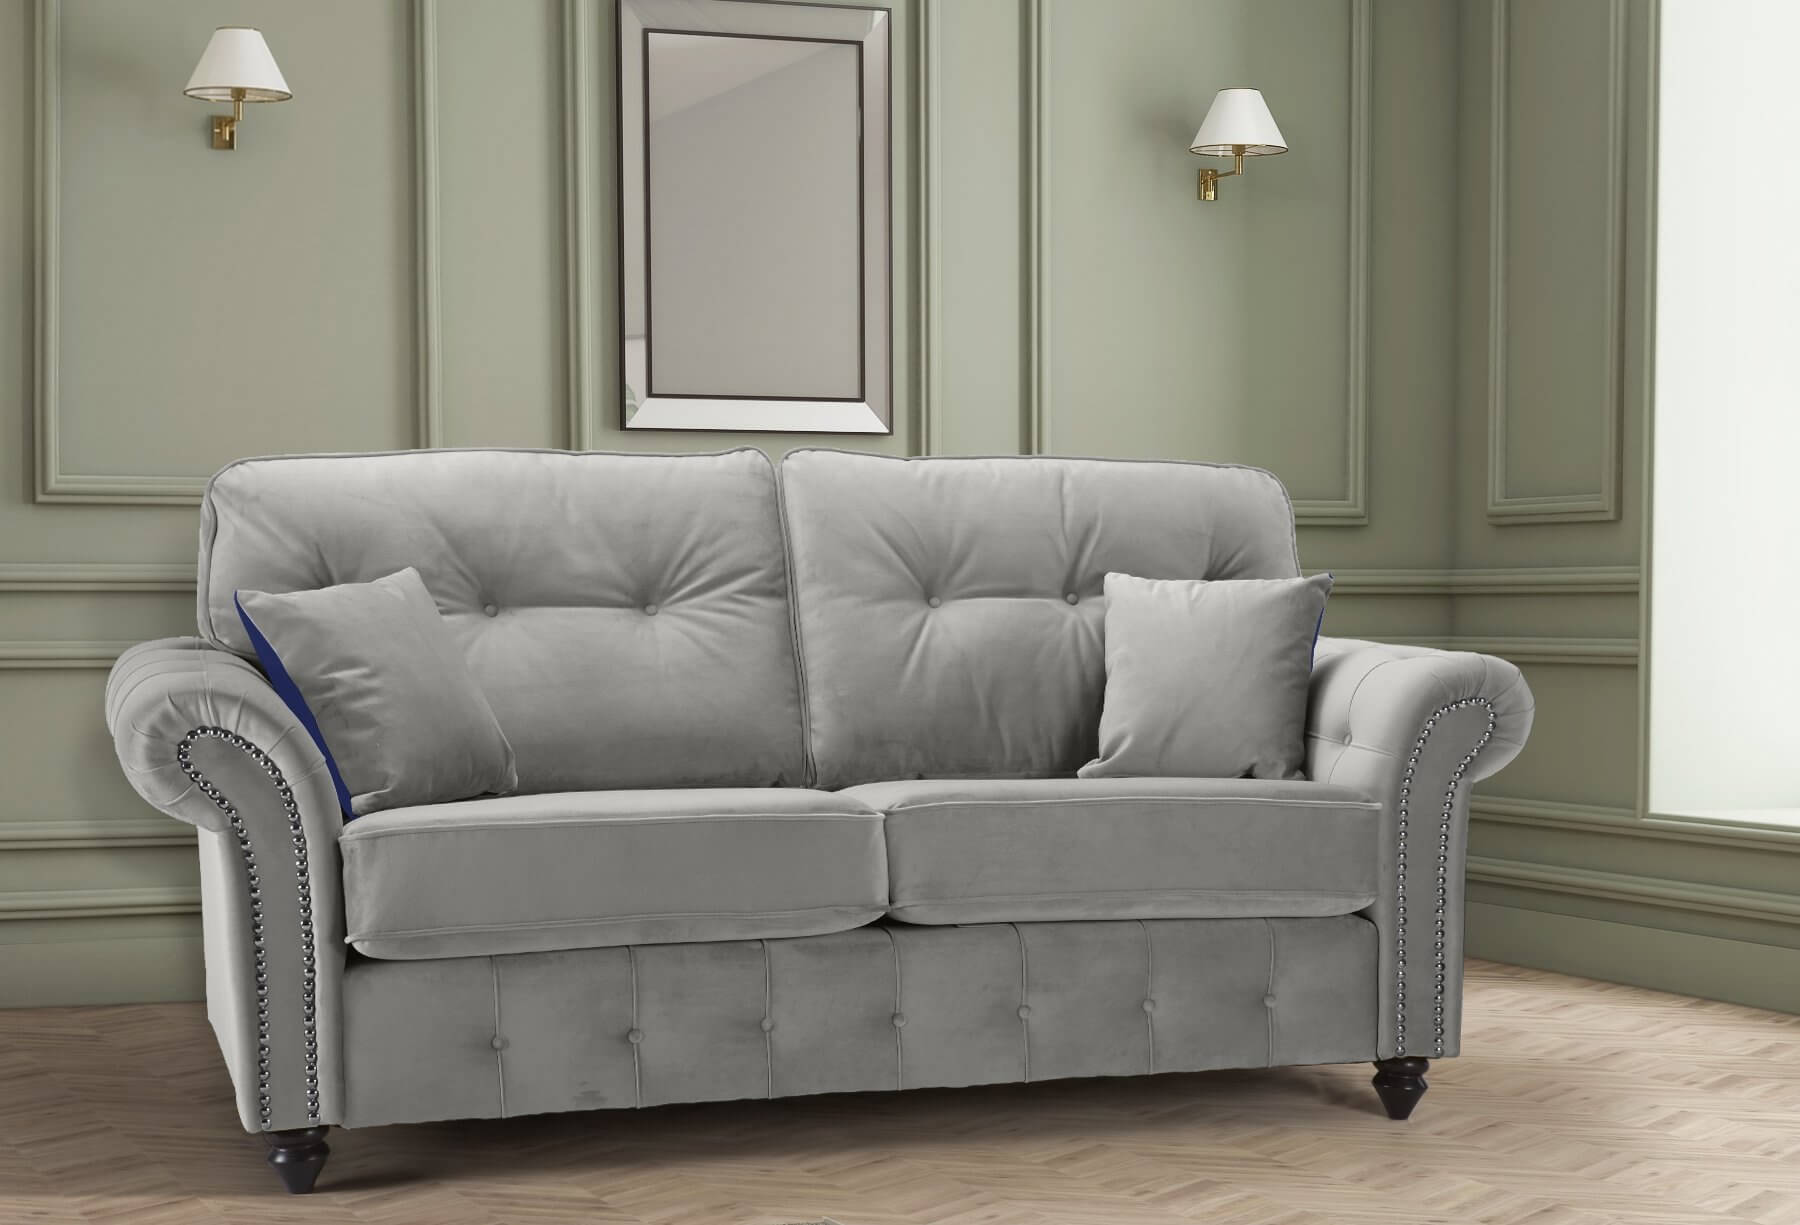 Velvet Light Grey 3 Seater Bella Sofa with High Back and Reversible Pillows